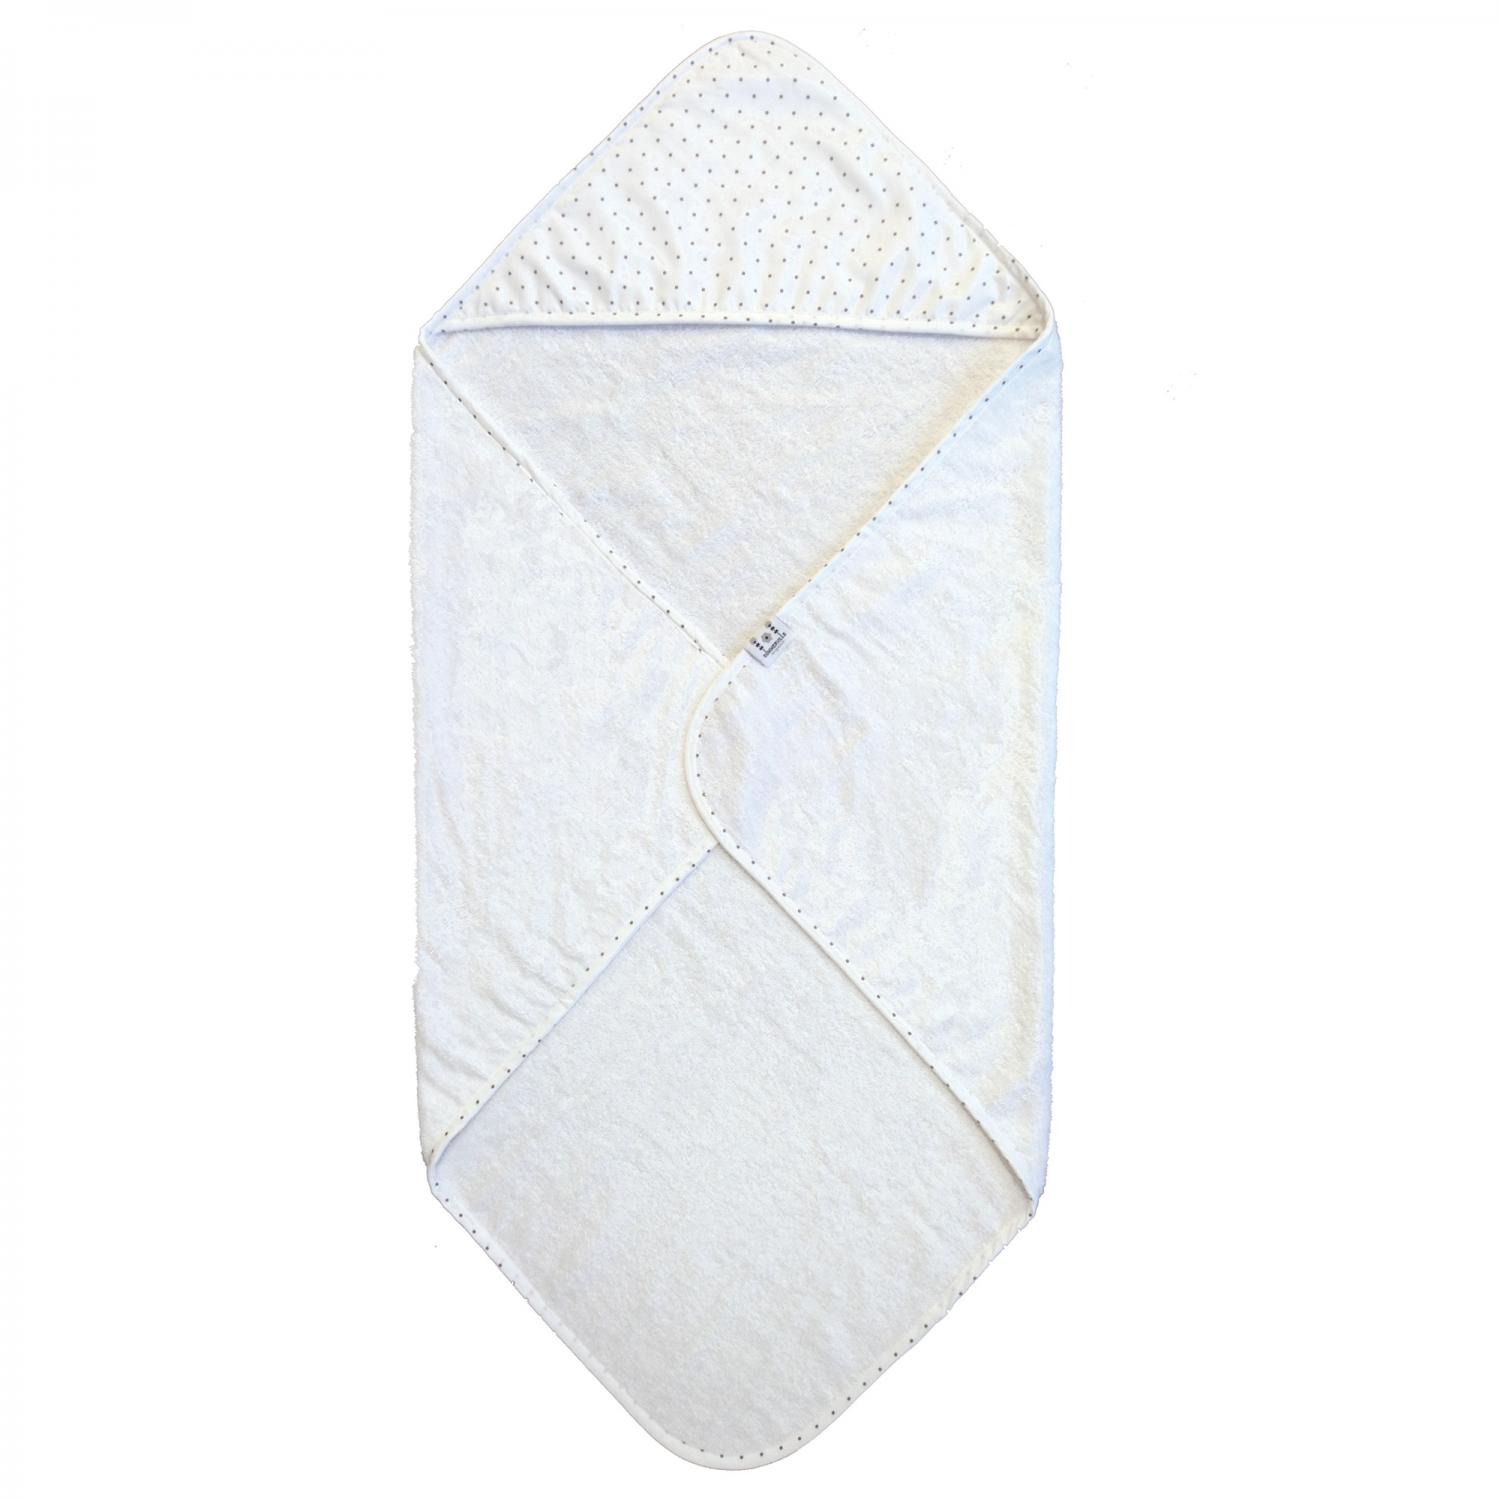 Hooded towel white dotty